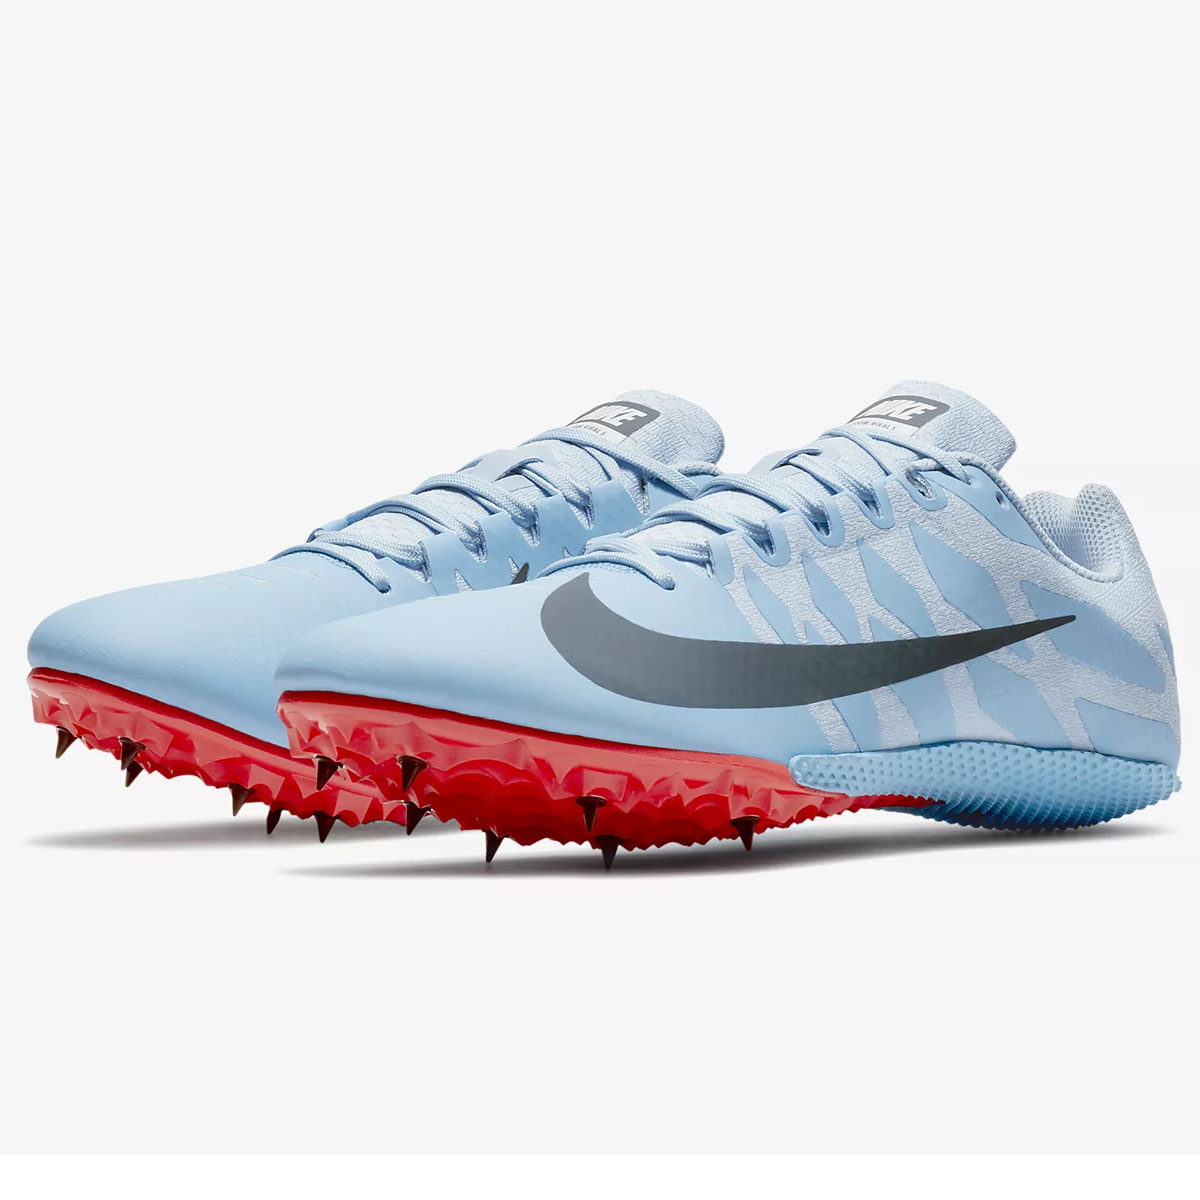 promo code ebce5 b4158 Designed with the sprinter in mind, the Nike Zoom Rival S 9 Unisex Track  Spike is ideal for short distances, hurdles and jumping events.